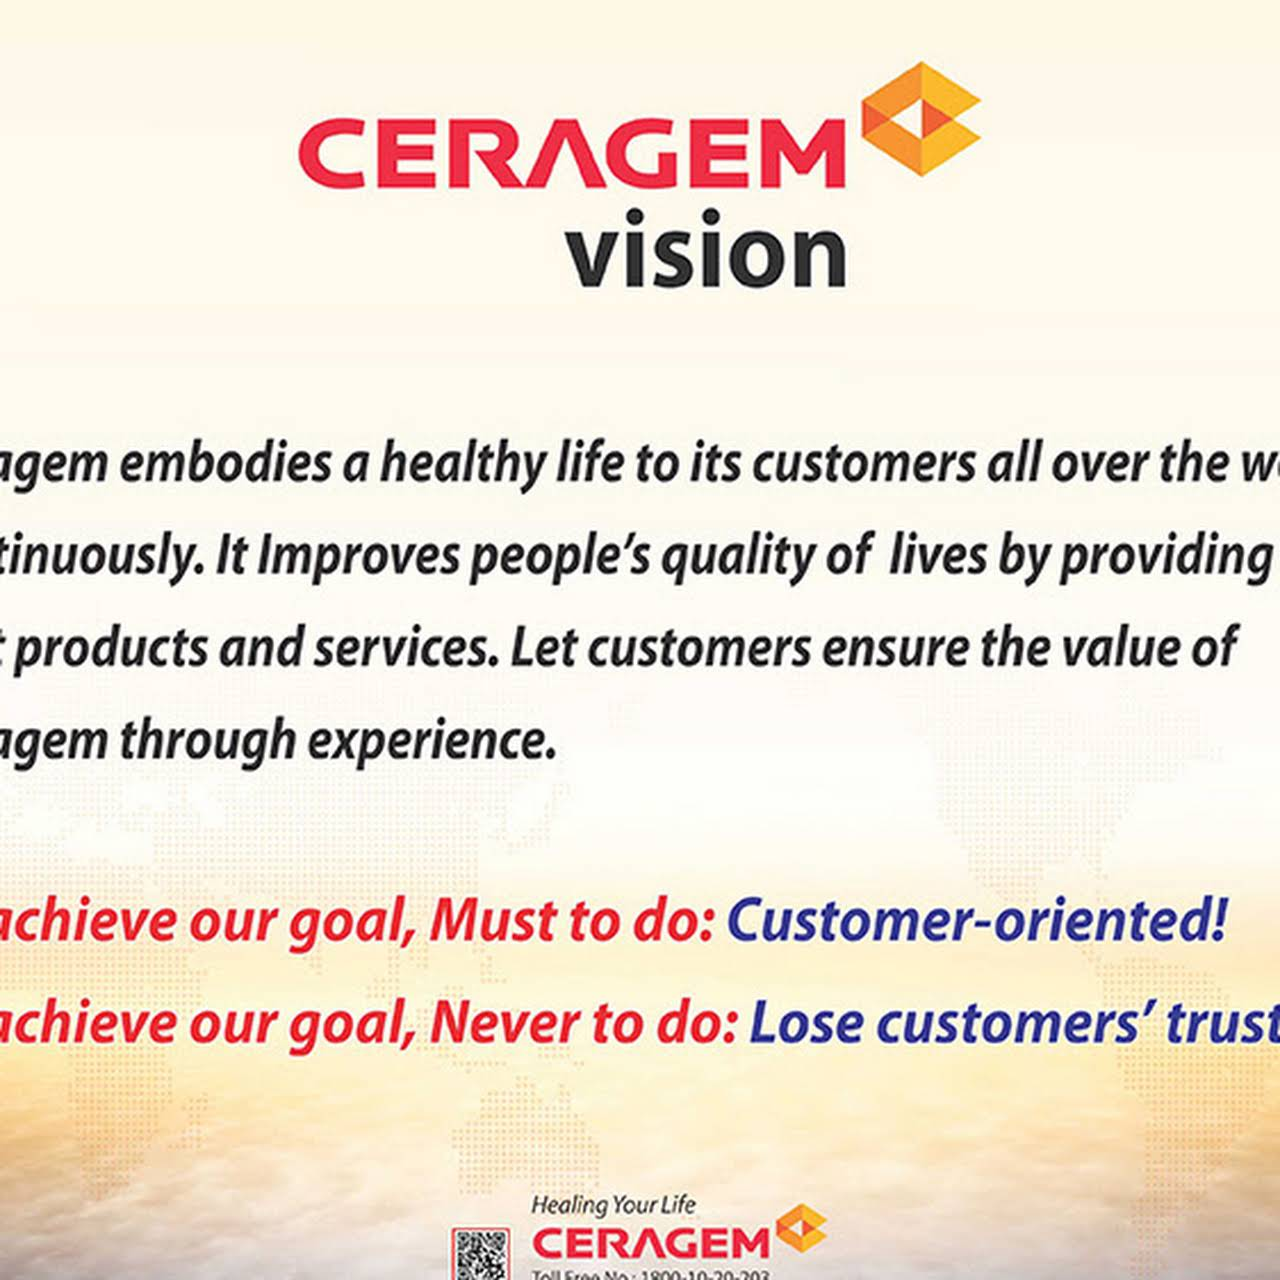 CERAGEM, Vaishali (Rishit Enterprises) - Ceragem Physical